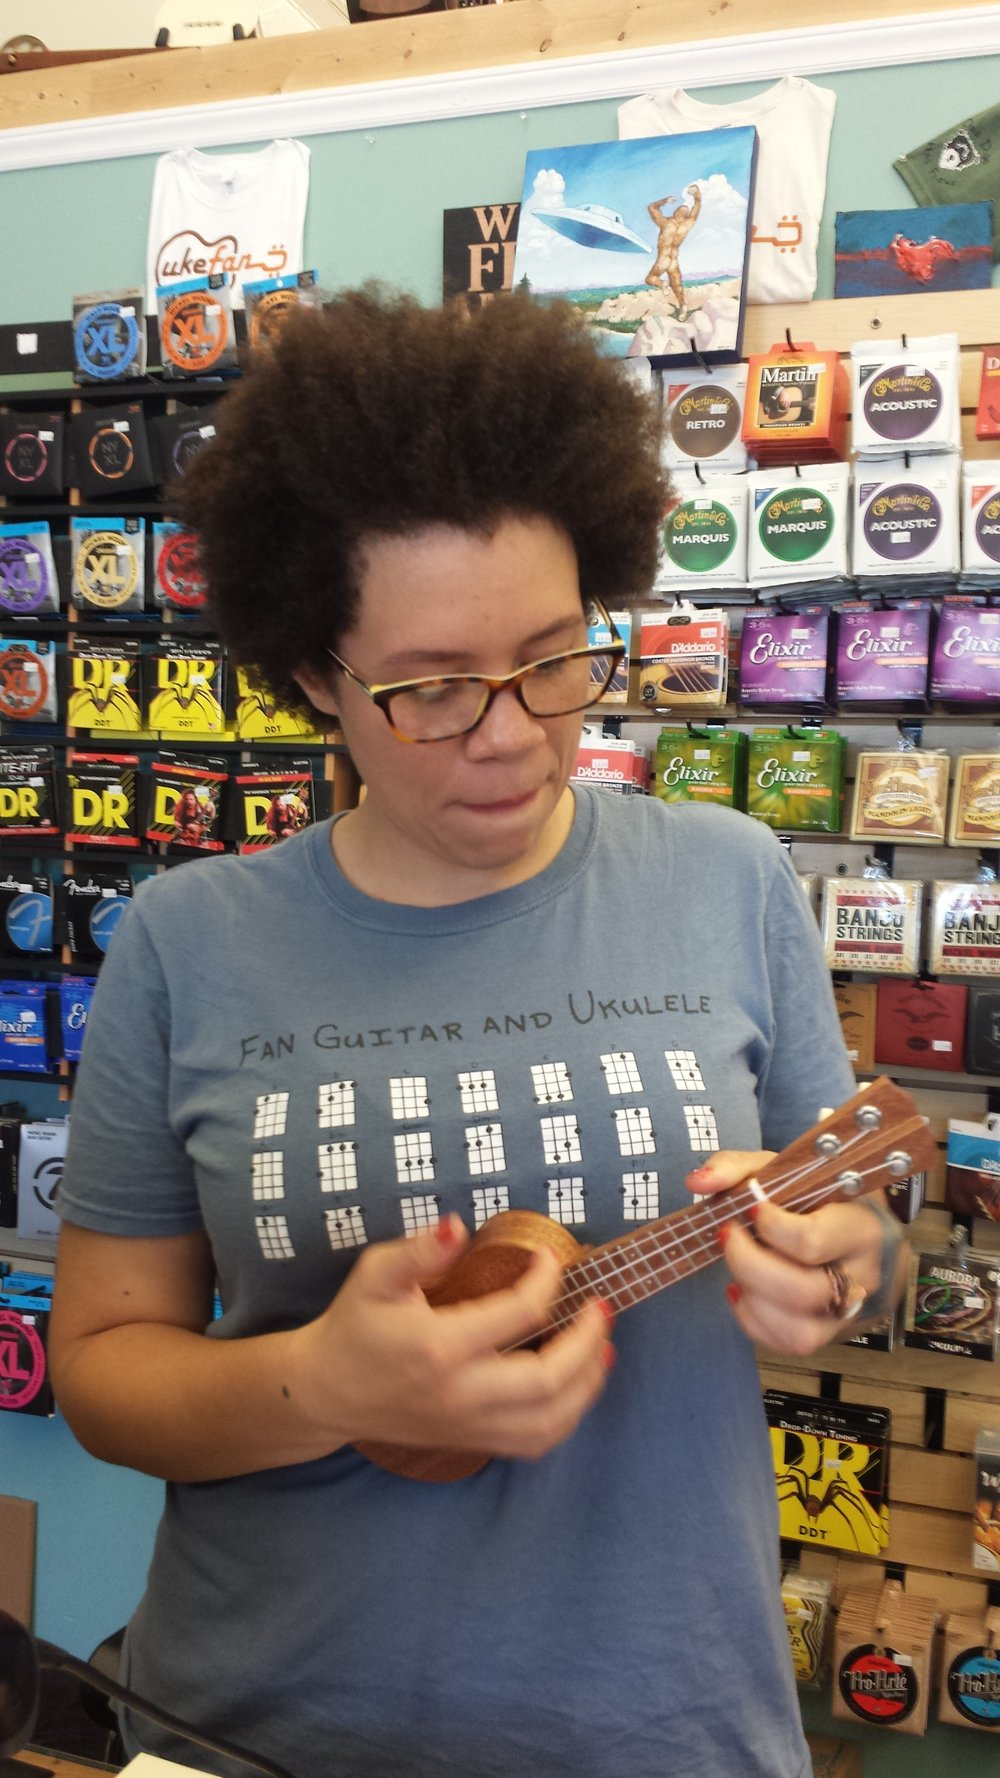 Natalie at the shop showing off her amazing skills on a pocket uke